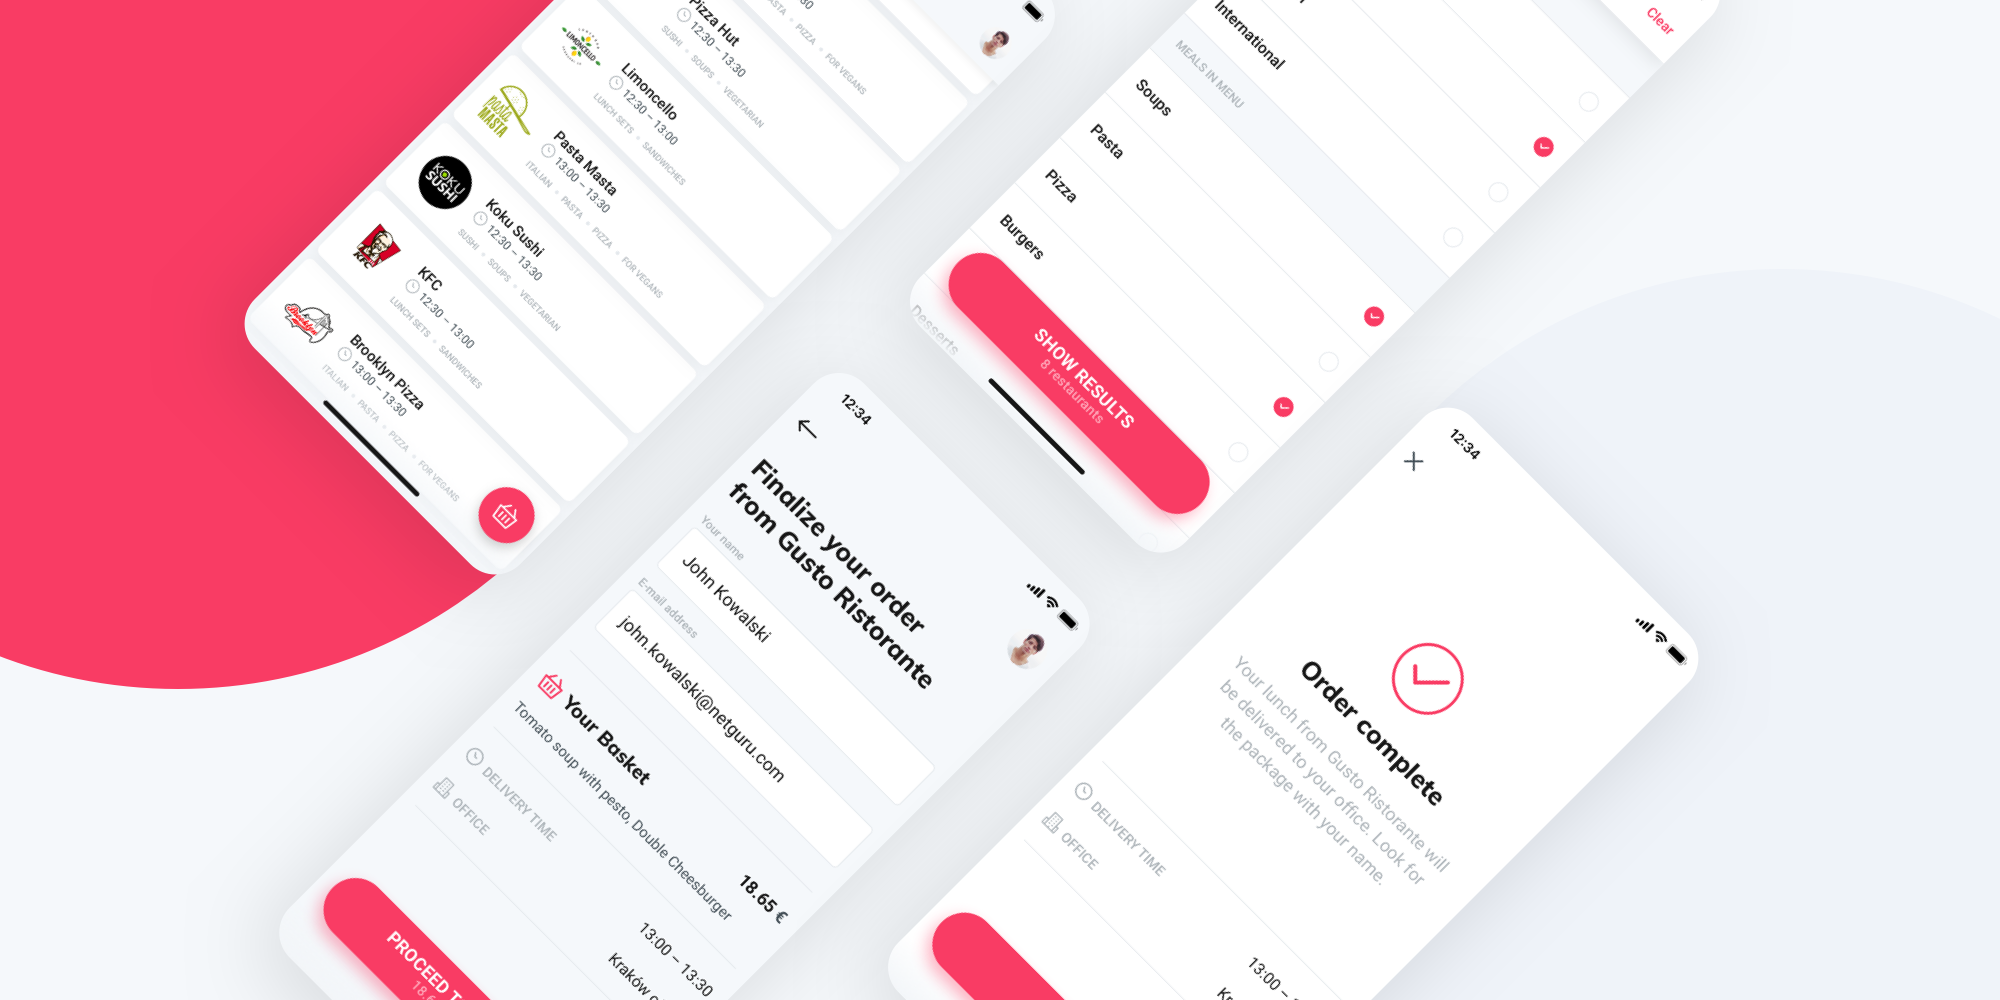 Lunching – a food delivery app developed for iOS and Android